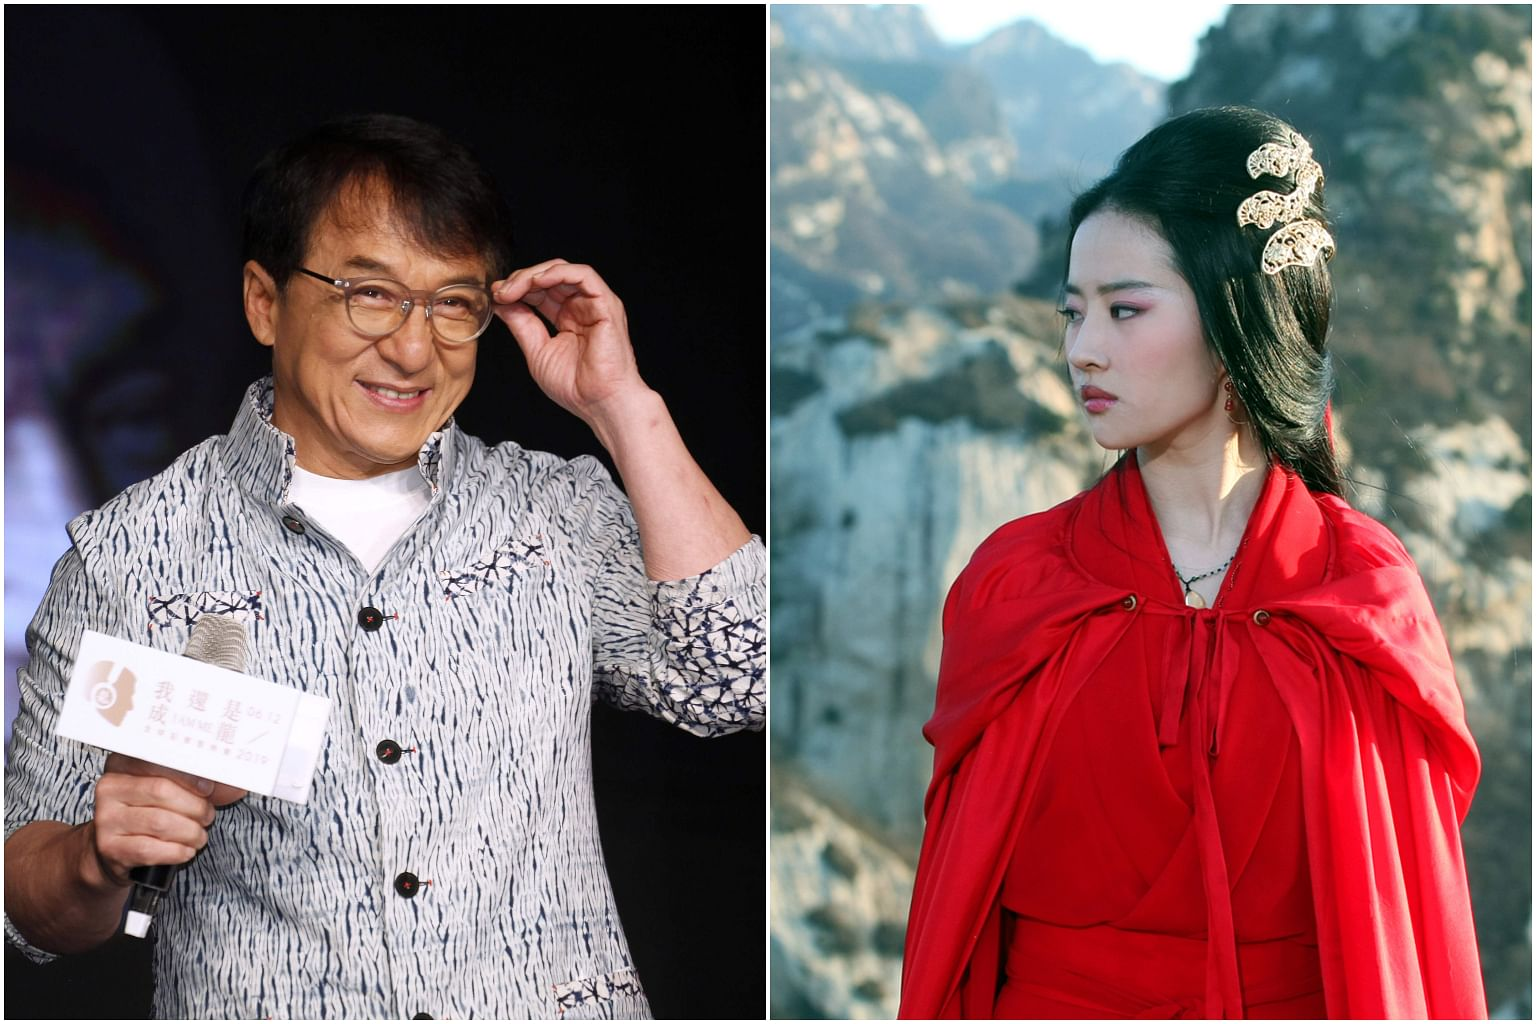 Disney Mulan Star Liu Yifei Jackie Chan Slammed For Comments On Hong Kong Protests Entertainment News Top Stories The Straits Times